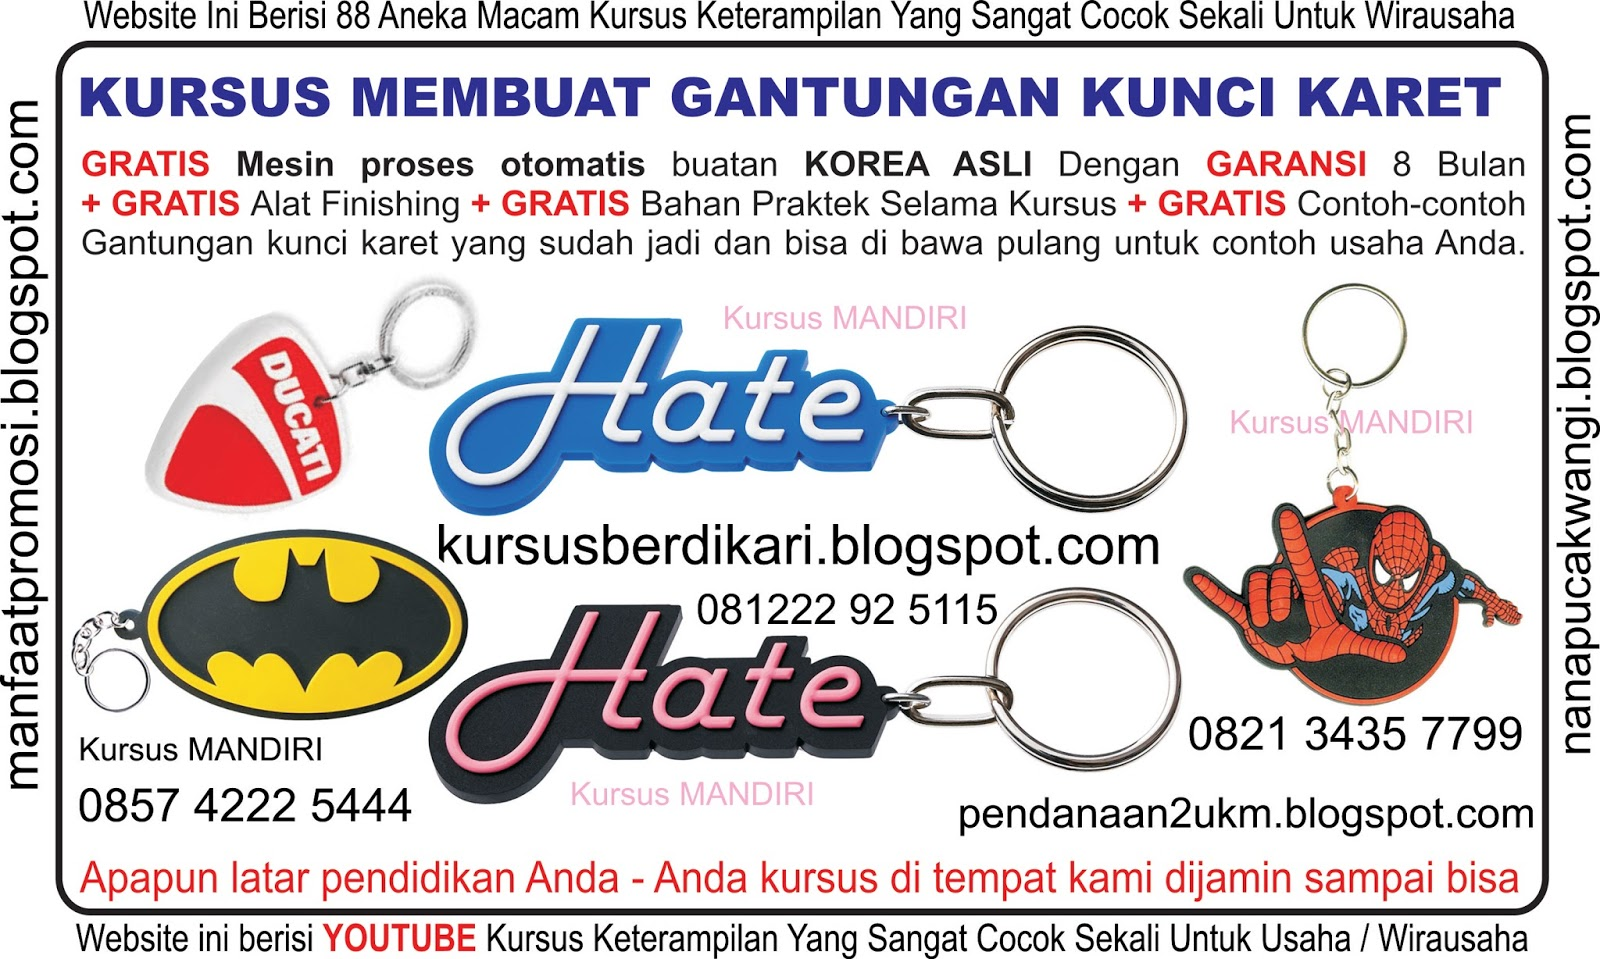 Training Tour Dan Travel Jual Tiket Online Kursus Mitra